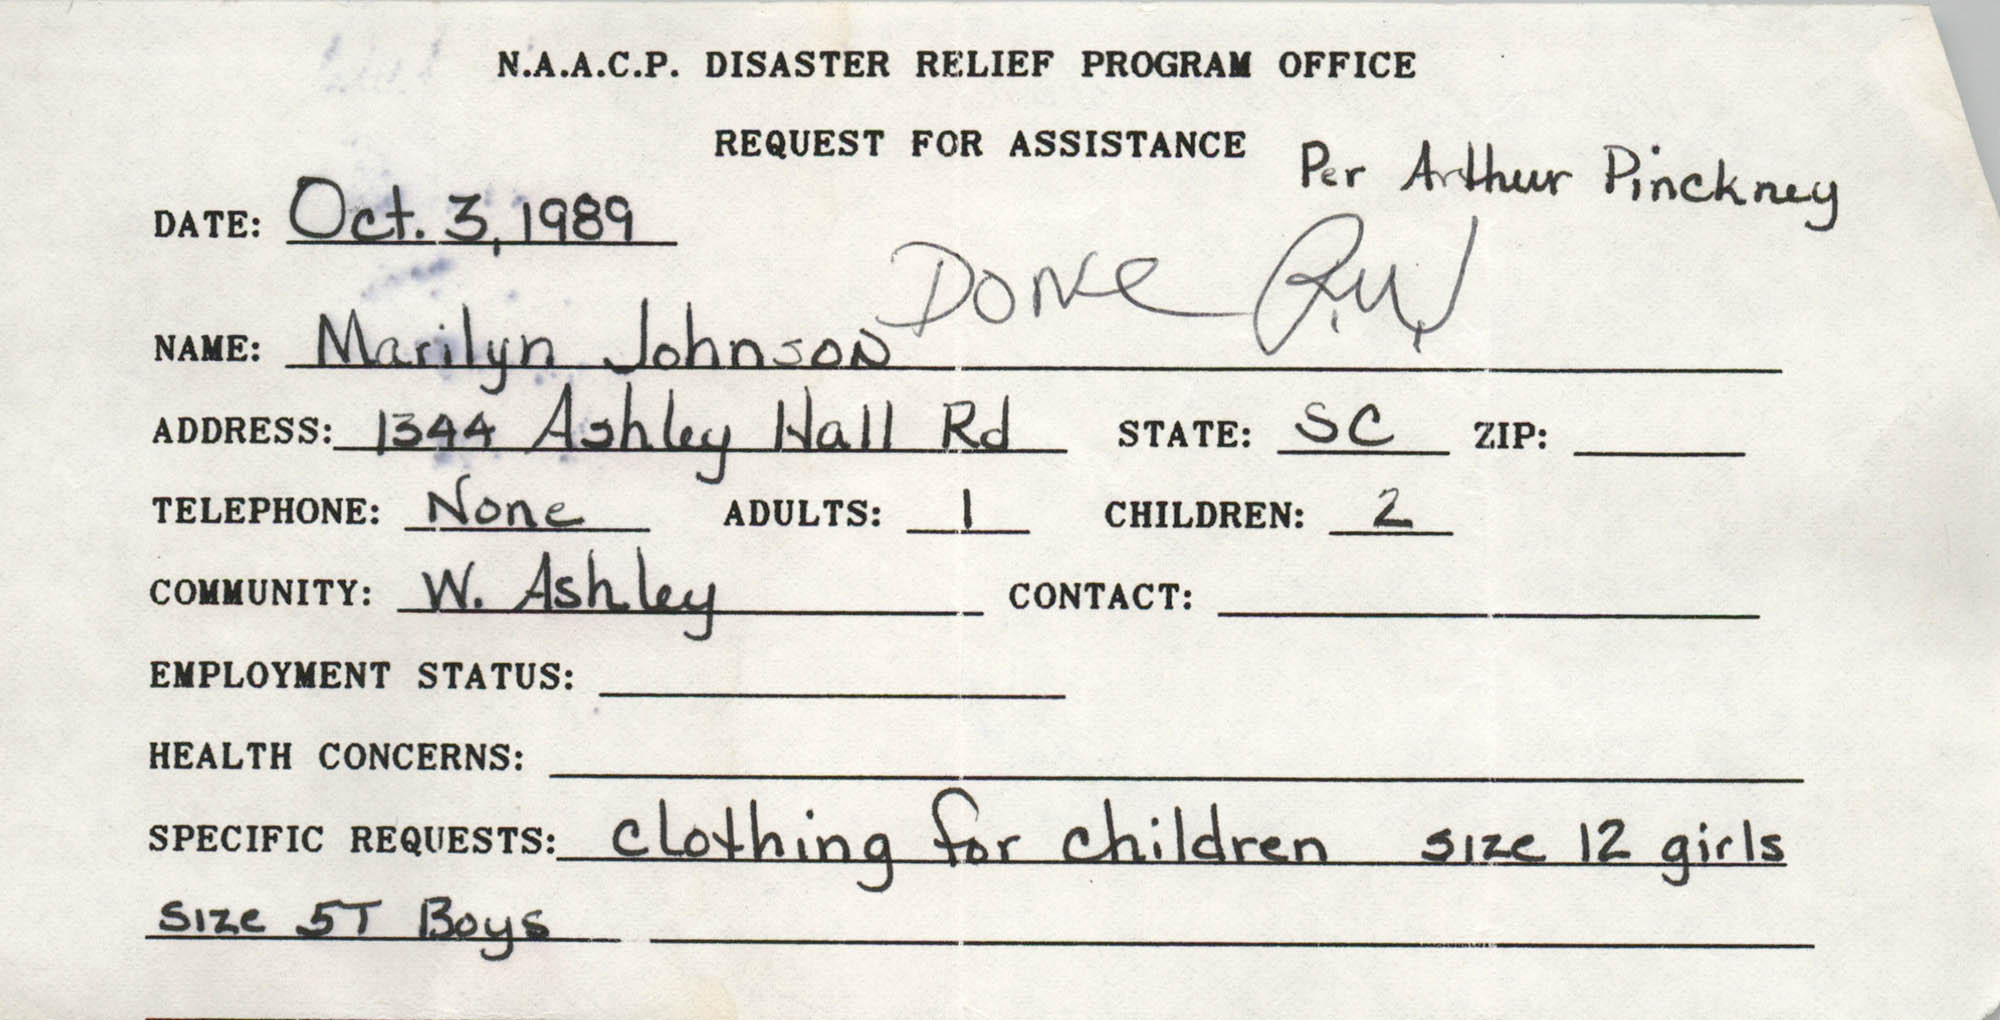 NAACP Disaster Relief Program Office, Hurricane Huge Requests for Assistance, 1989, Page 3